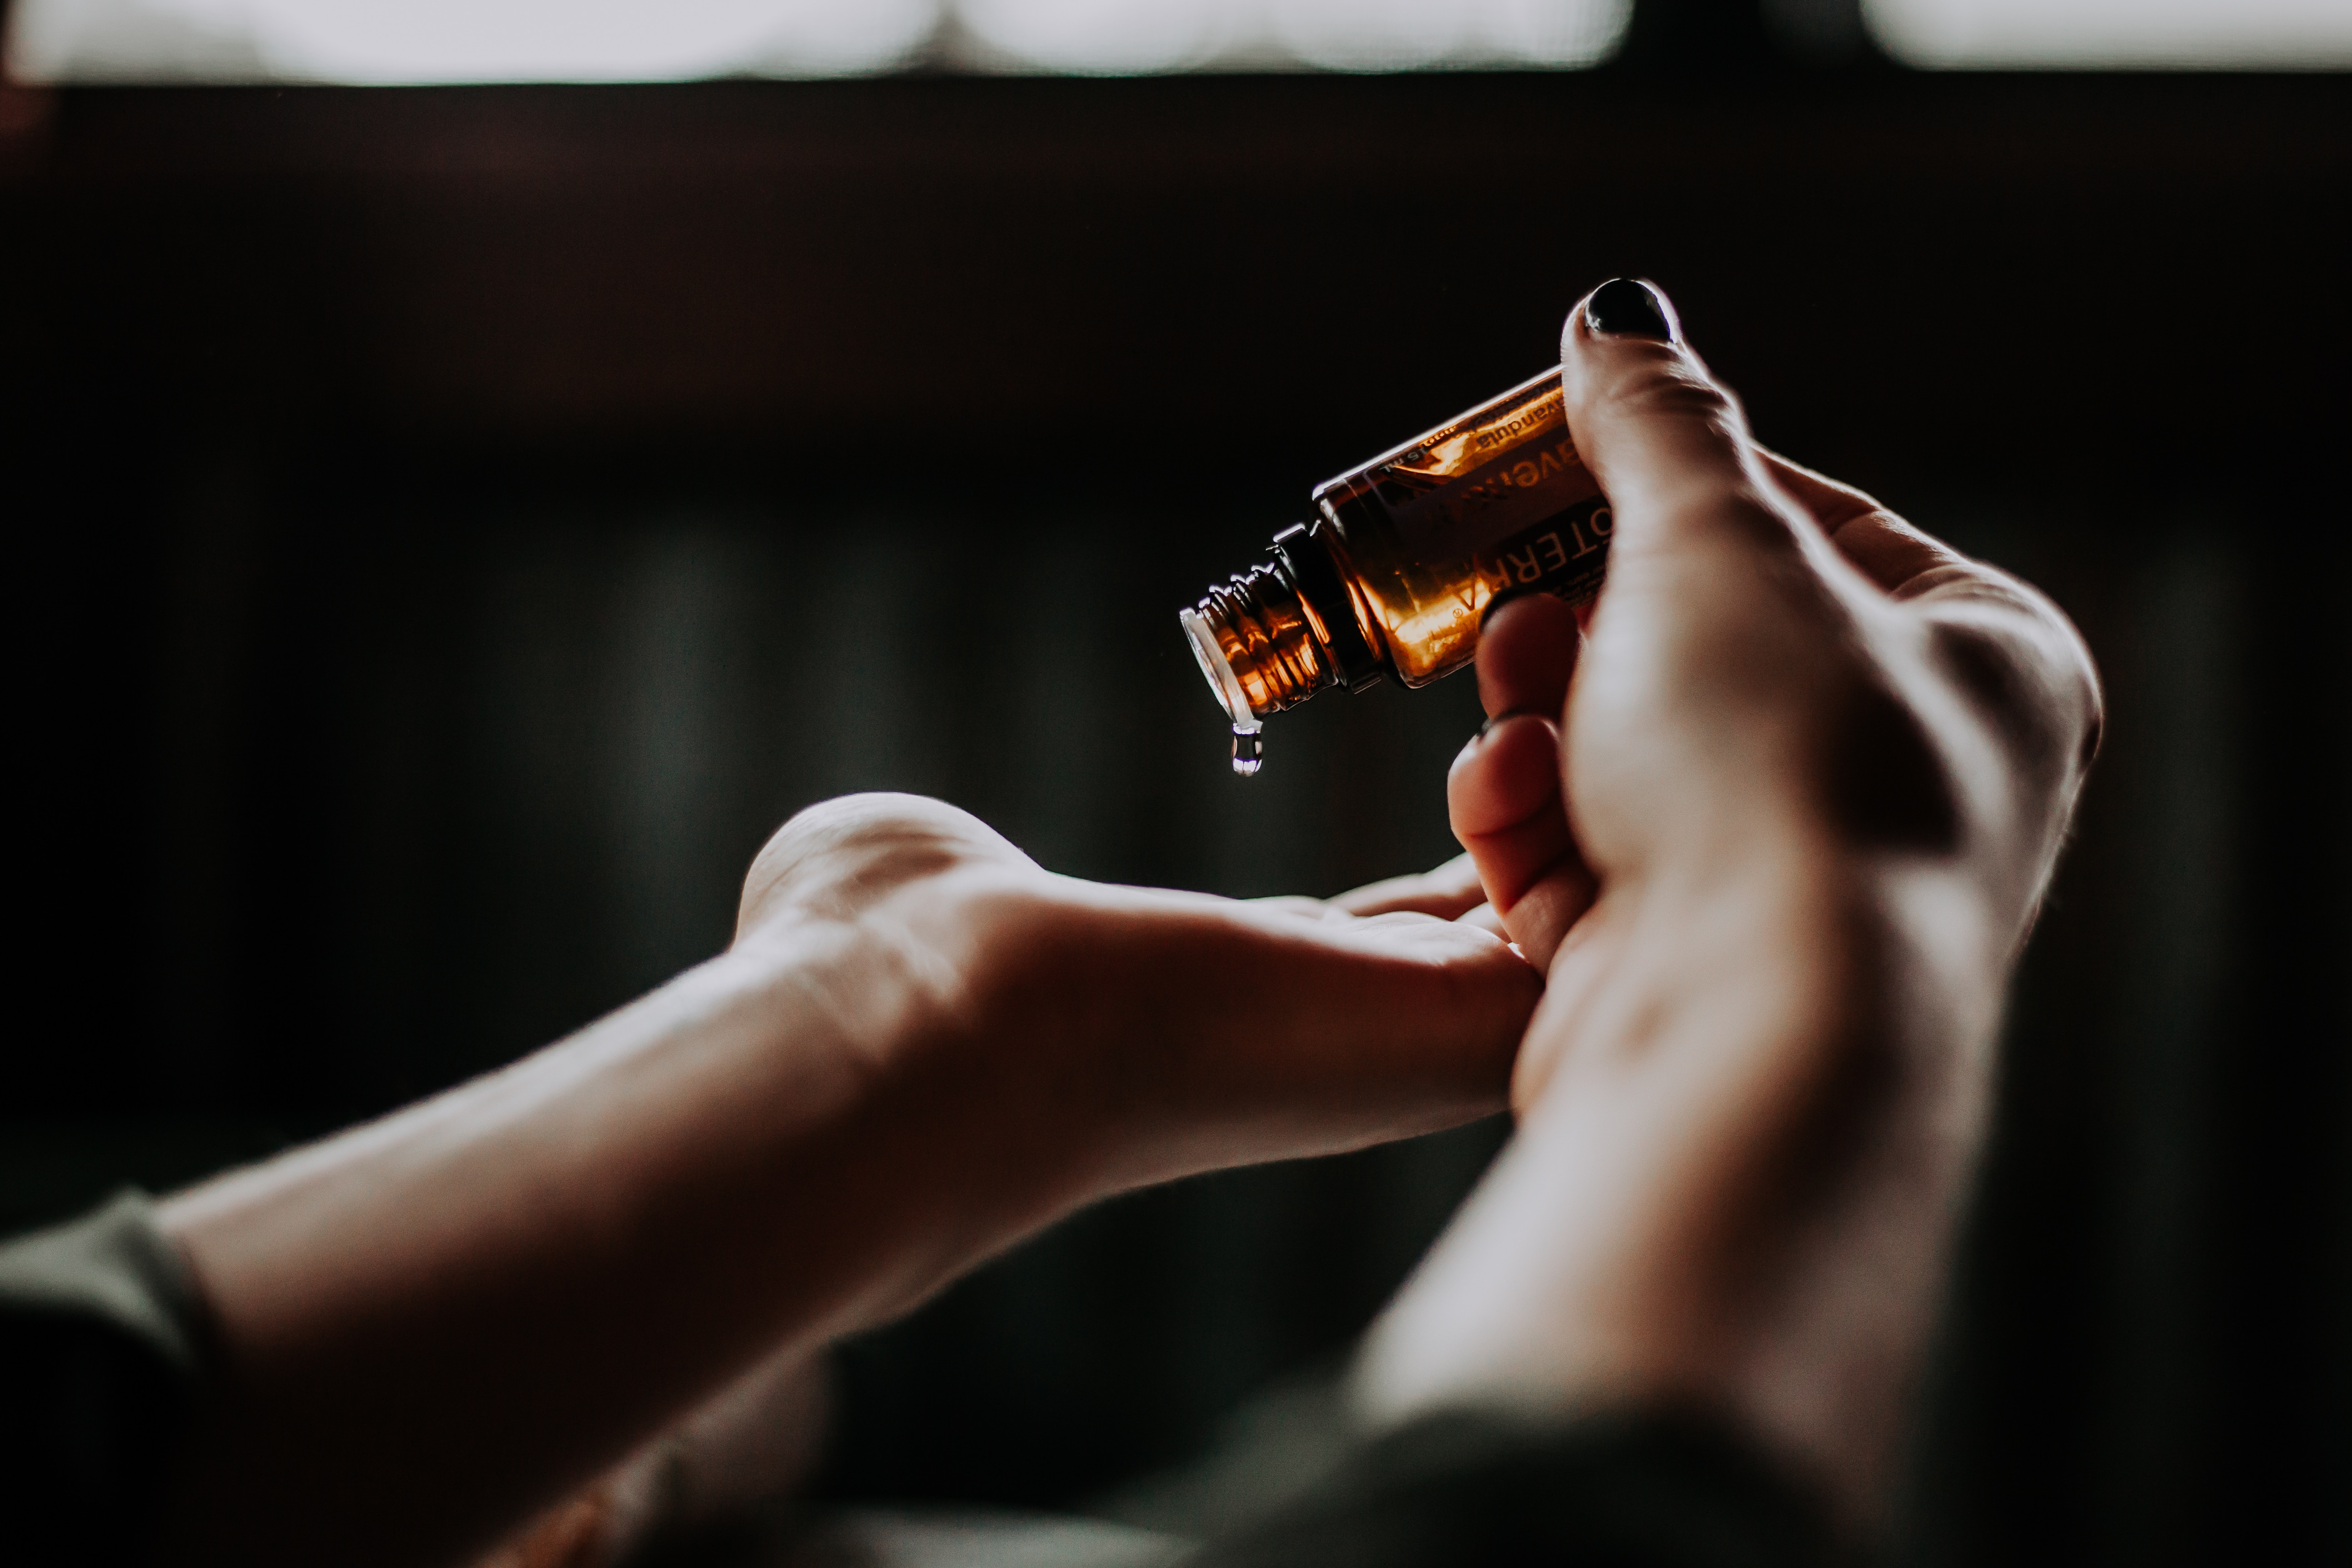 A girl pouring oils onto her palm.